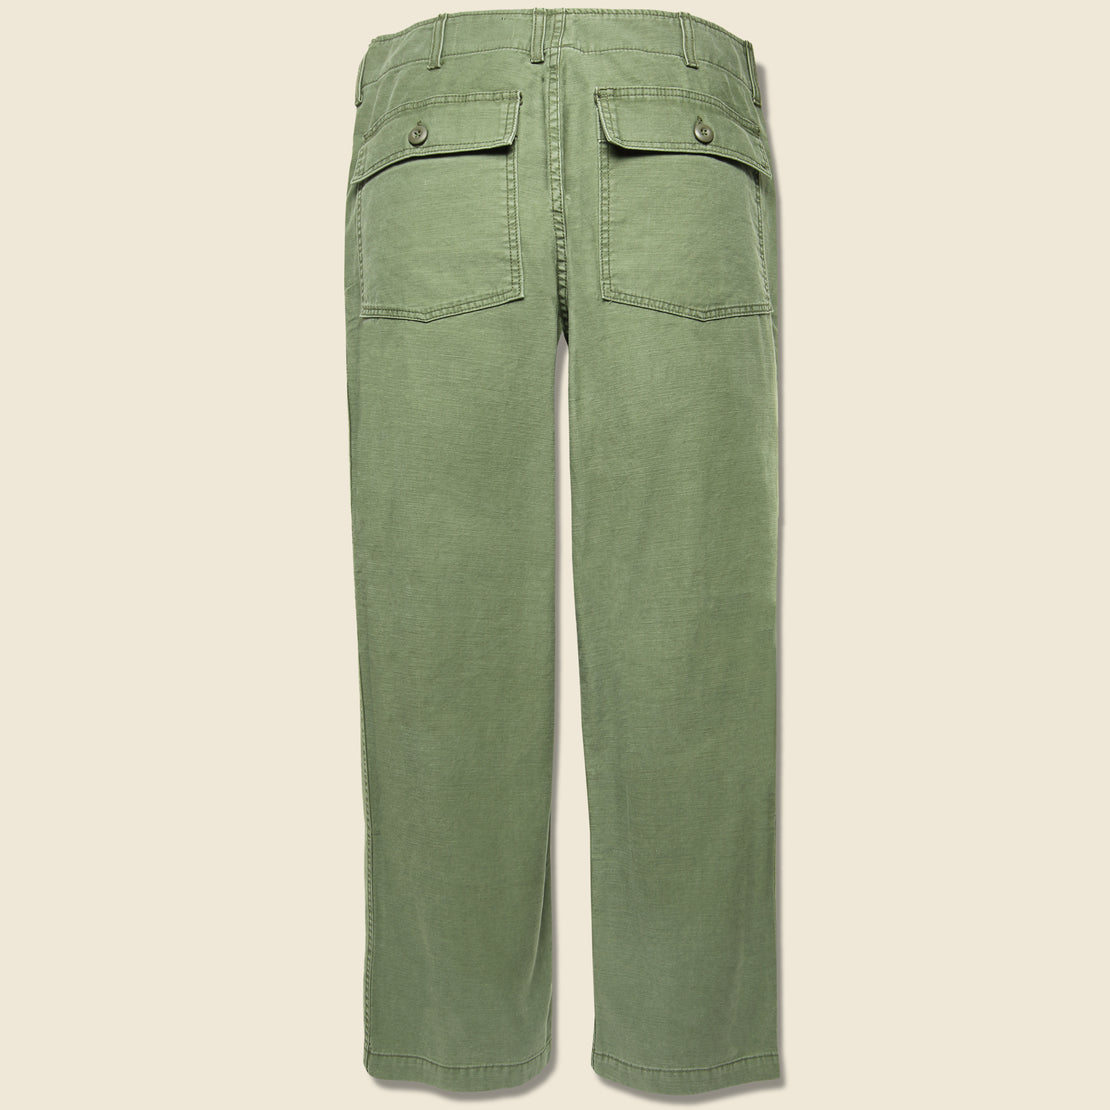 Oliver Military Trouser - Fatigue Green